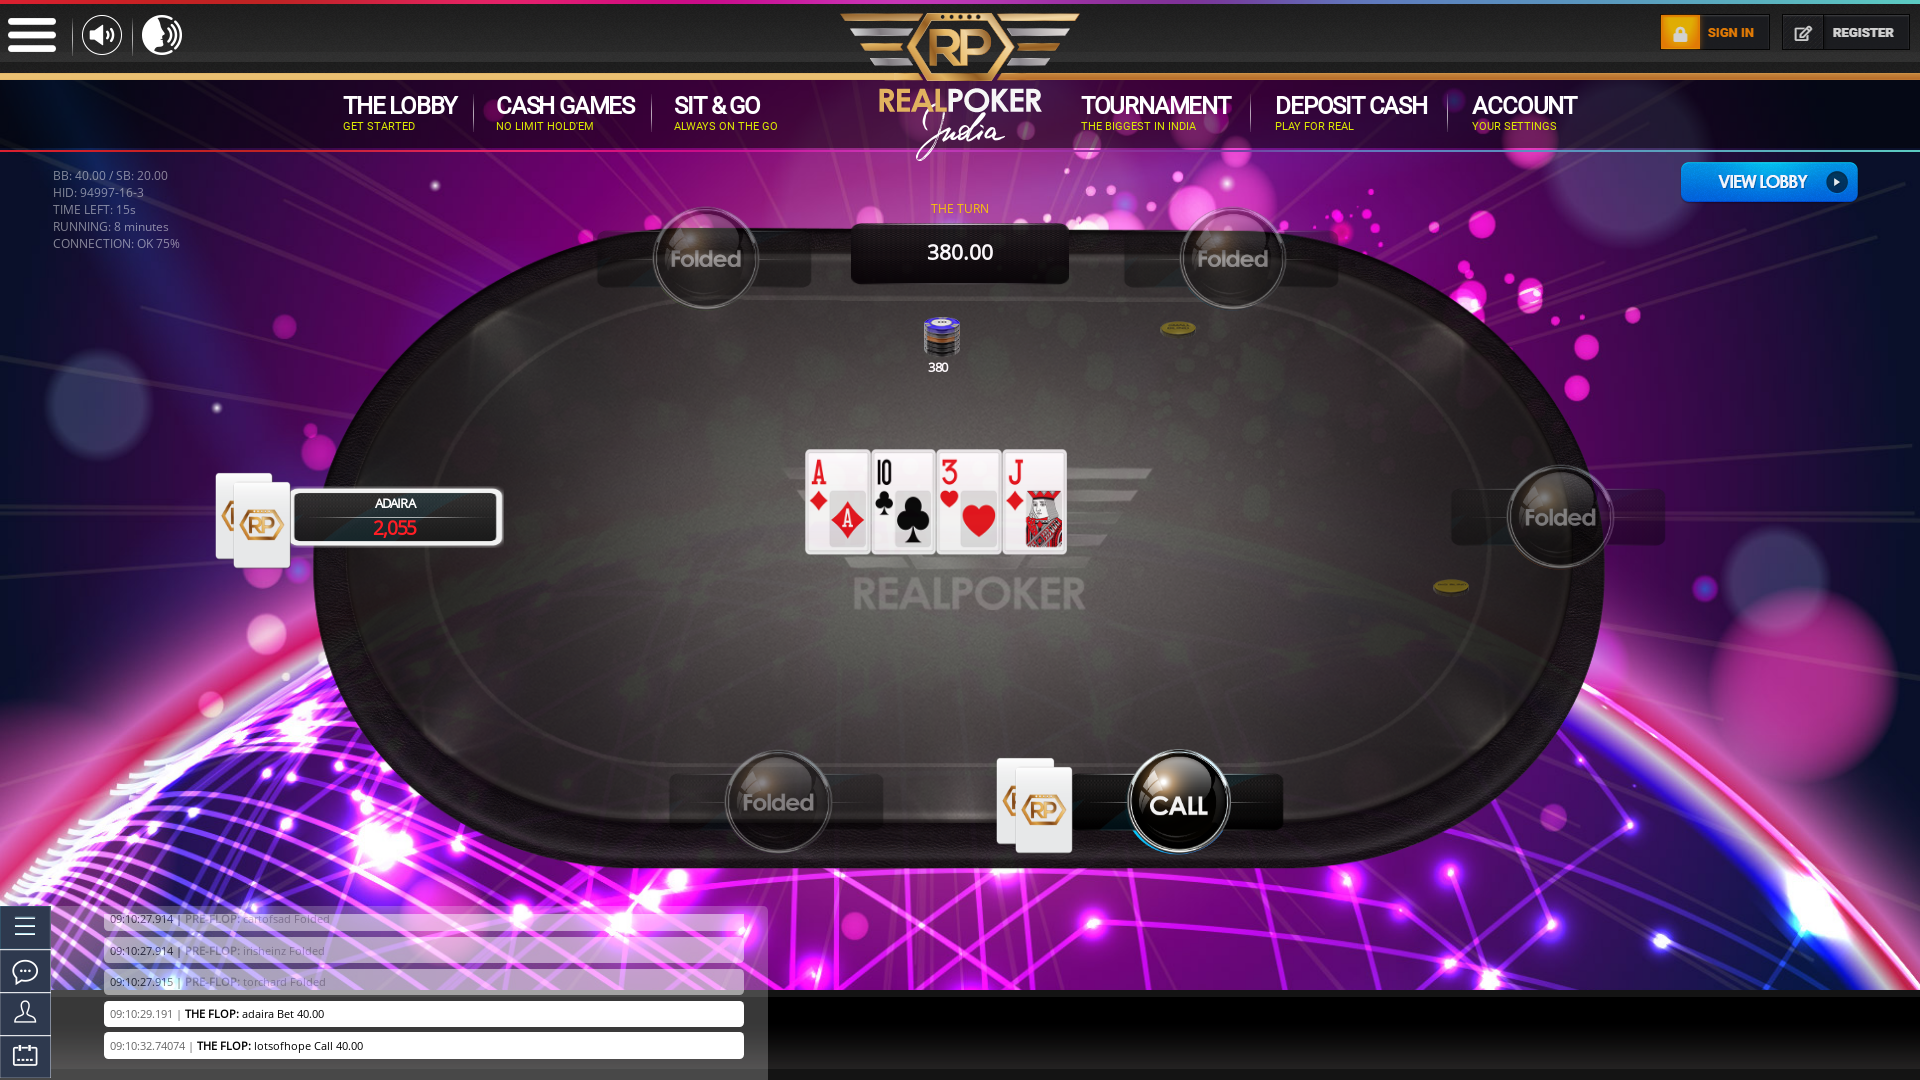 6 player texas holdem table at real poker with the table id 94997